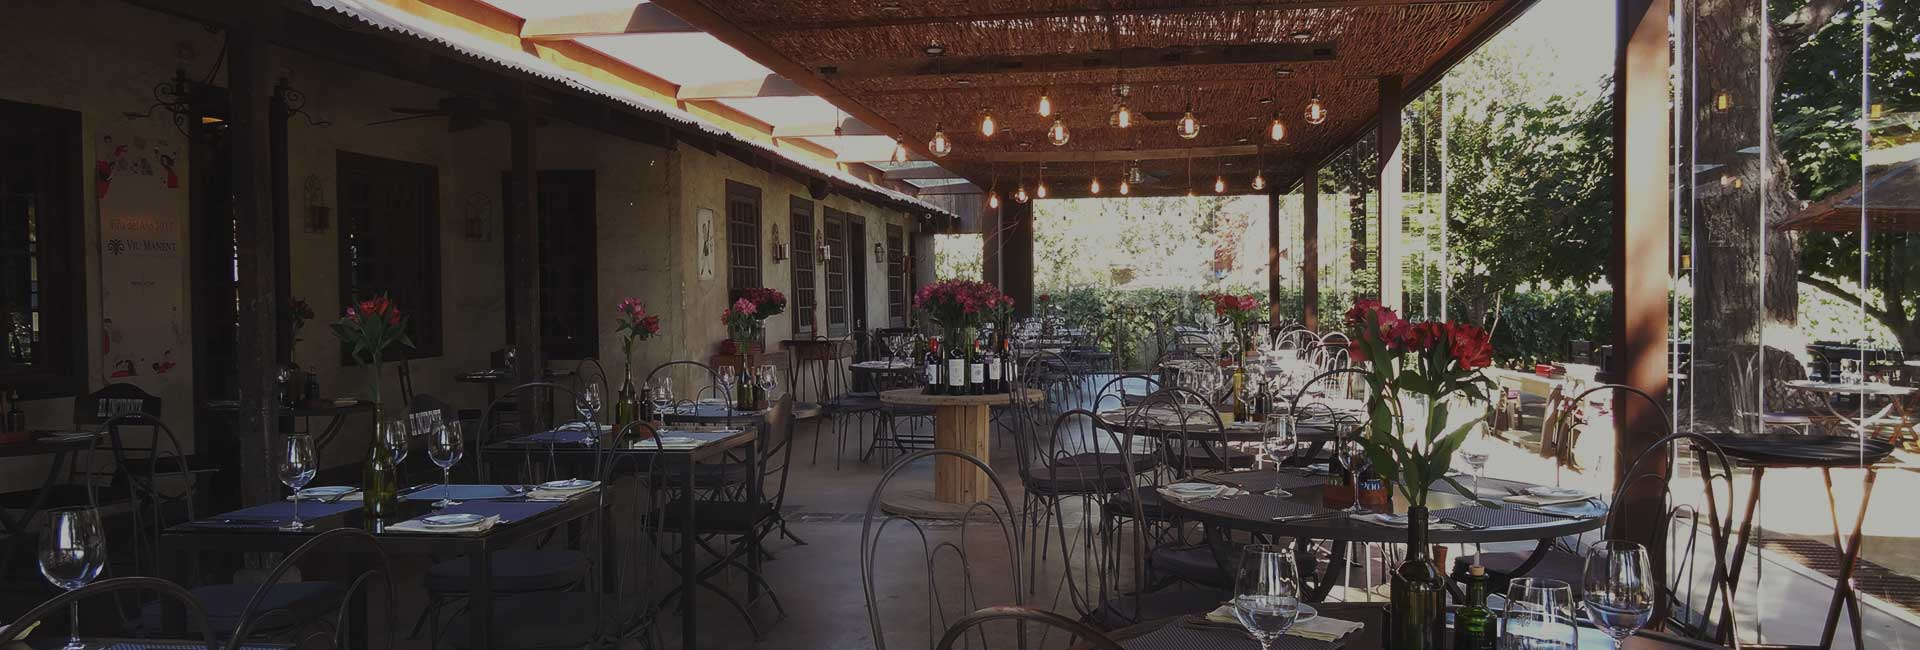 Rayuela Wine and Grill Restaurant